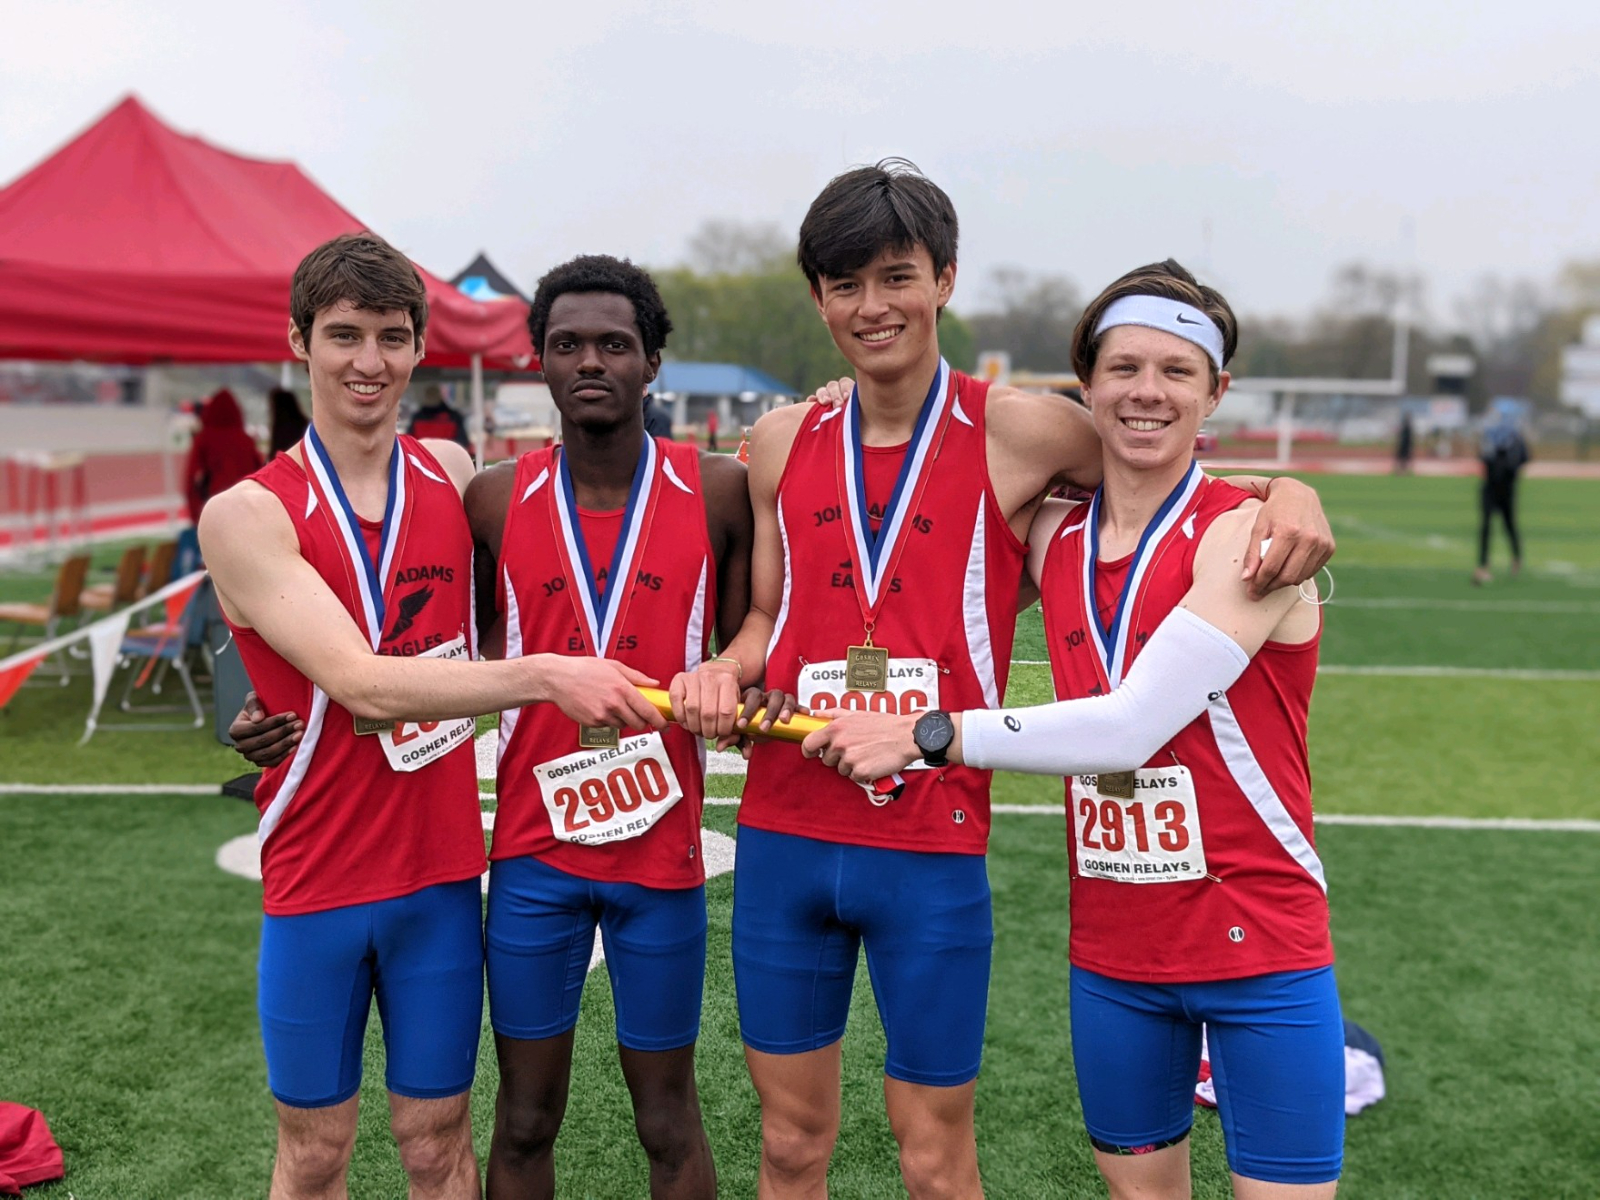 Boys Track and Field Goshen Relays (April 24)